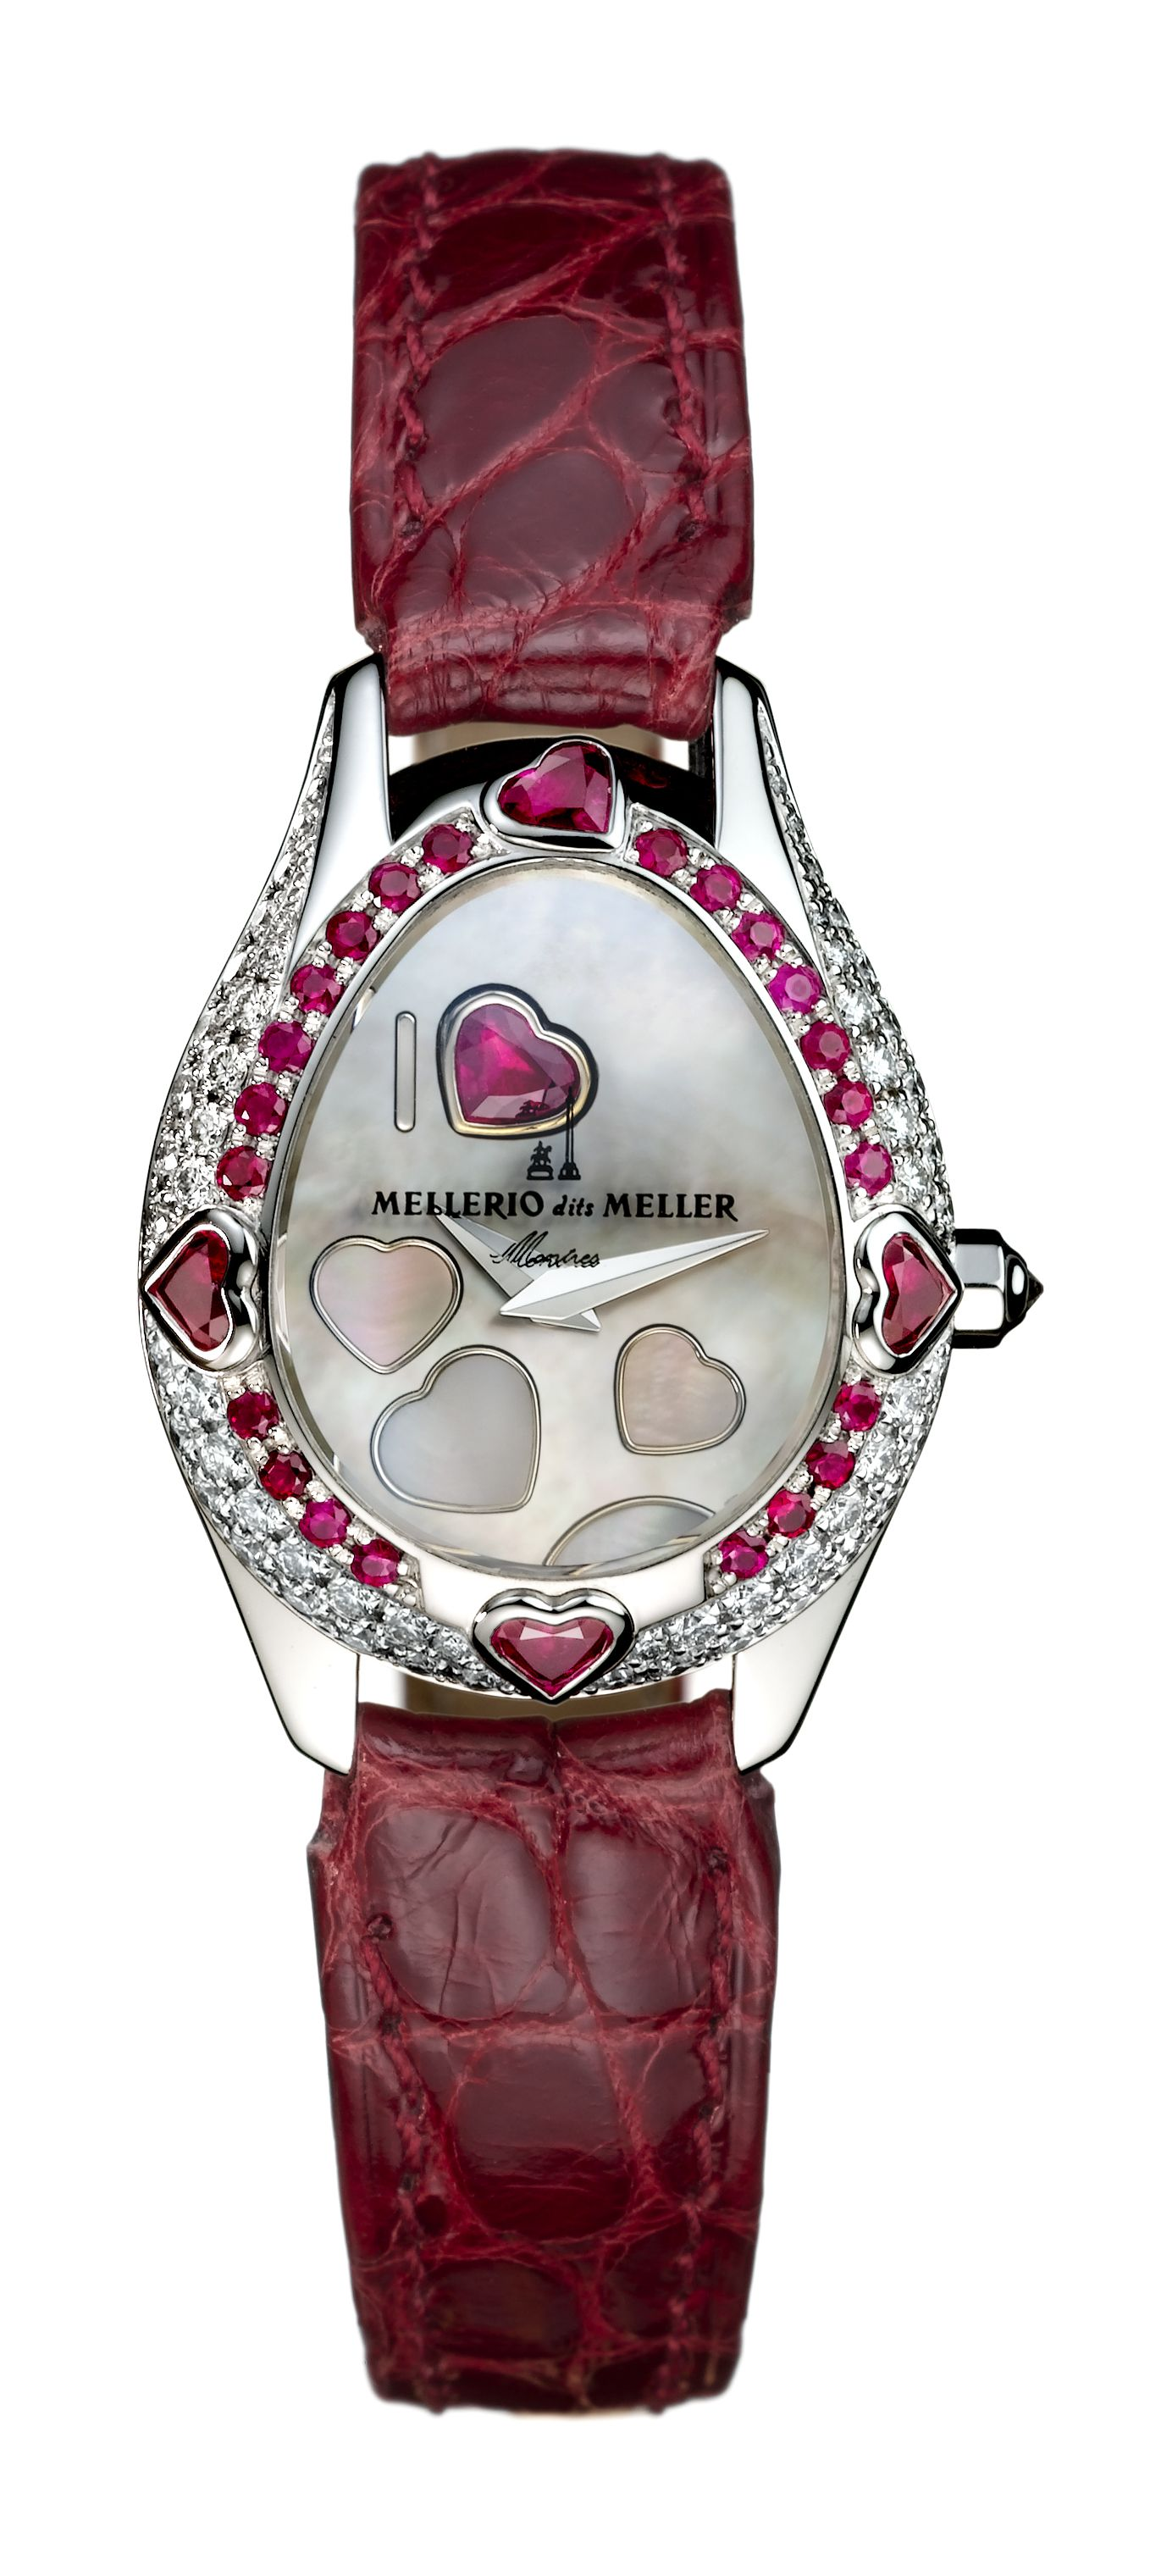 6c45616b7818 The Mellerio 9 de Coeur Watch in white gold and rubis by Mellerio dits  Meller…